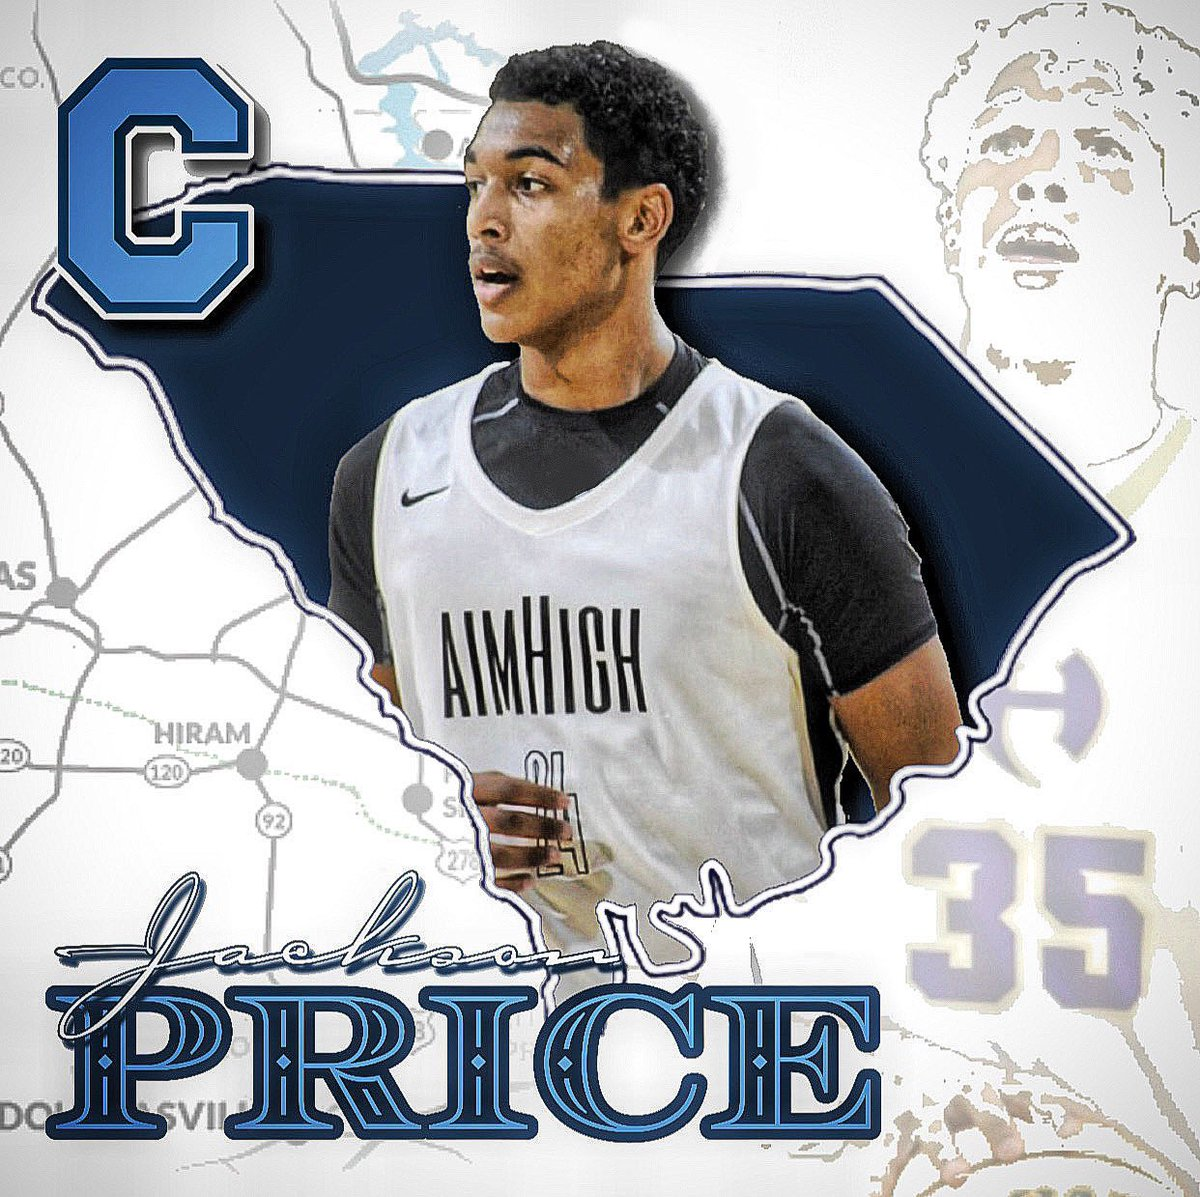 Another one of our young men has committed to play at the next level. @jprice_24 will further his education & take his talents to @CitadelHoops next year. #Congrats #AlwaysAimHigh https://t.co/6U6hbmD4KR